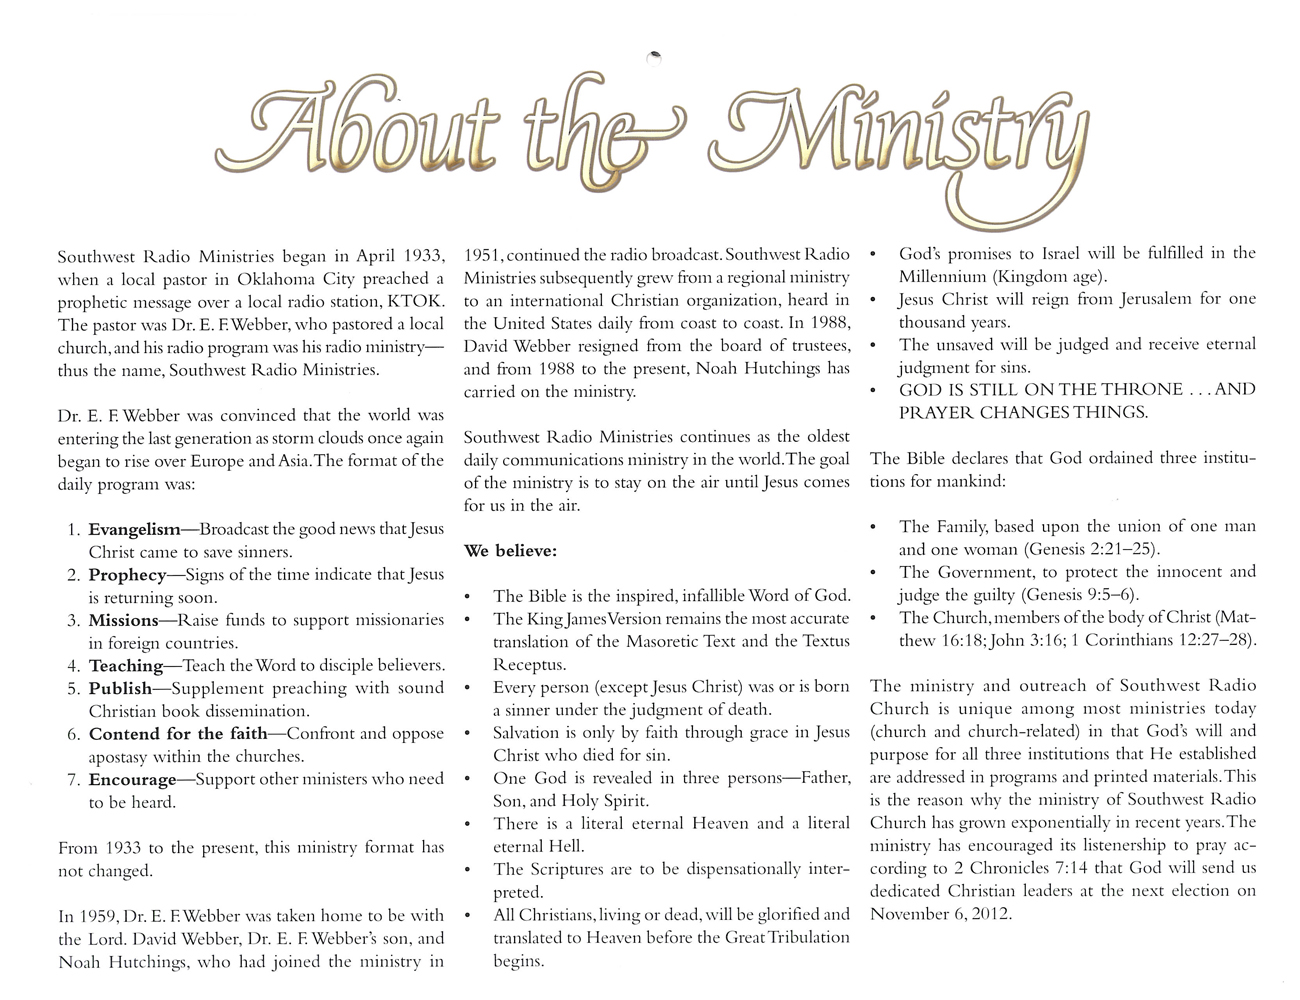 Inside Cover: 2012 Prophecy Calendar: About the Ministry